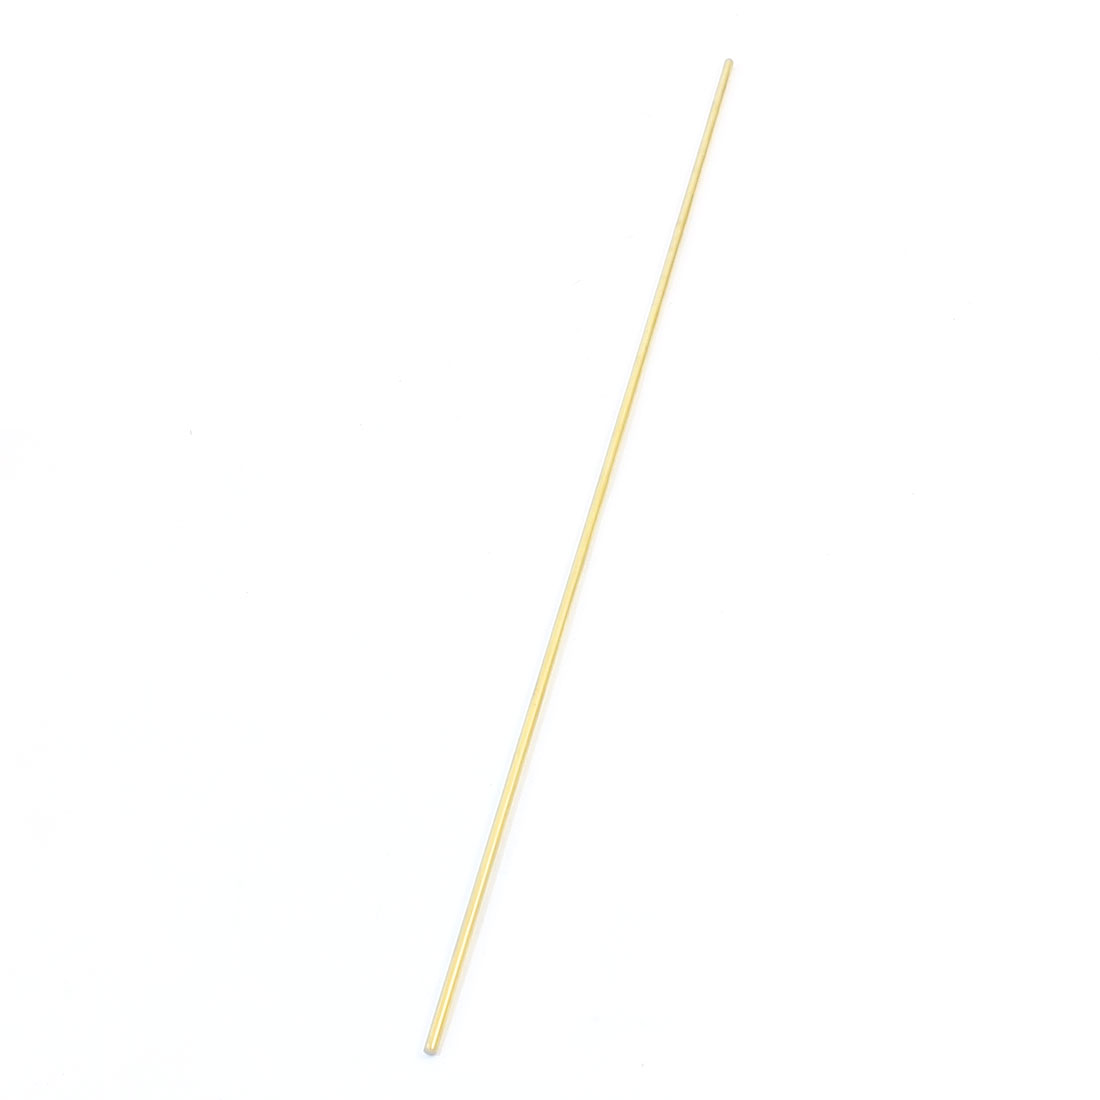 Brass Solid Round Rod 50cm Long 3mm Diameter Lathe Bar Stock